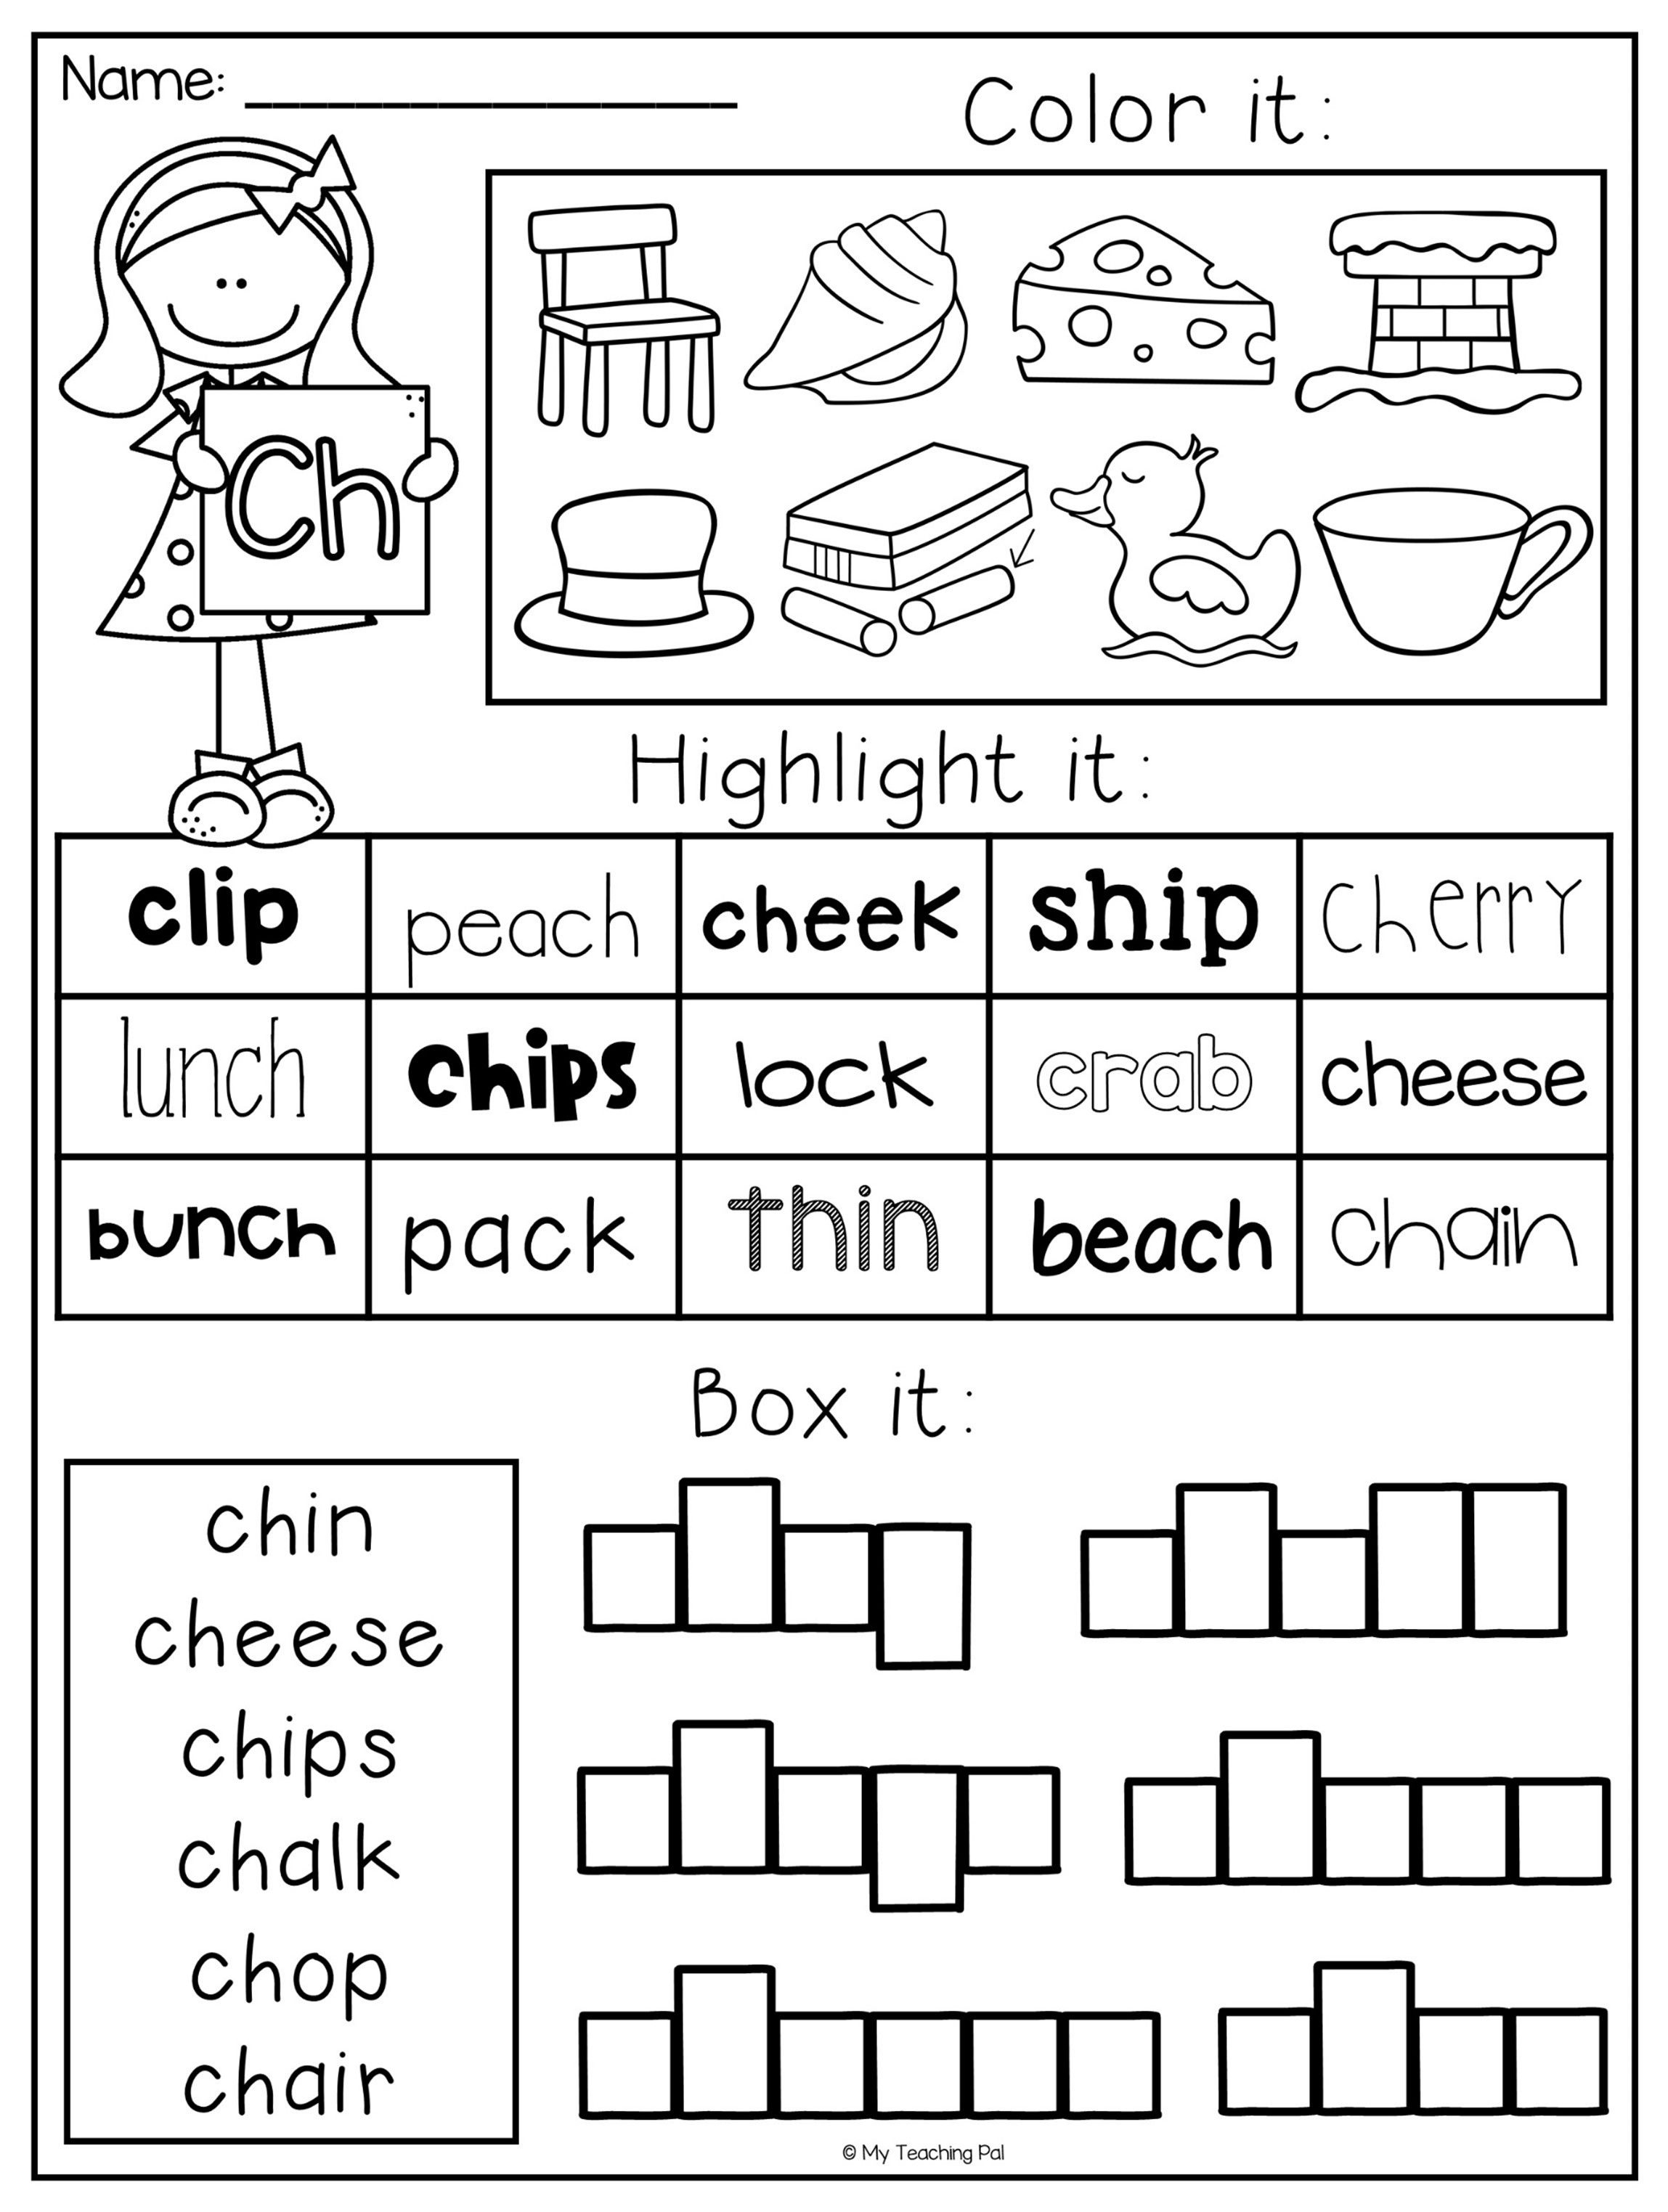 Digraph Worksheet Packet - Ch, Sh, Th, Wh, Ph | Educational | Sh Worksheets Free Printable